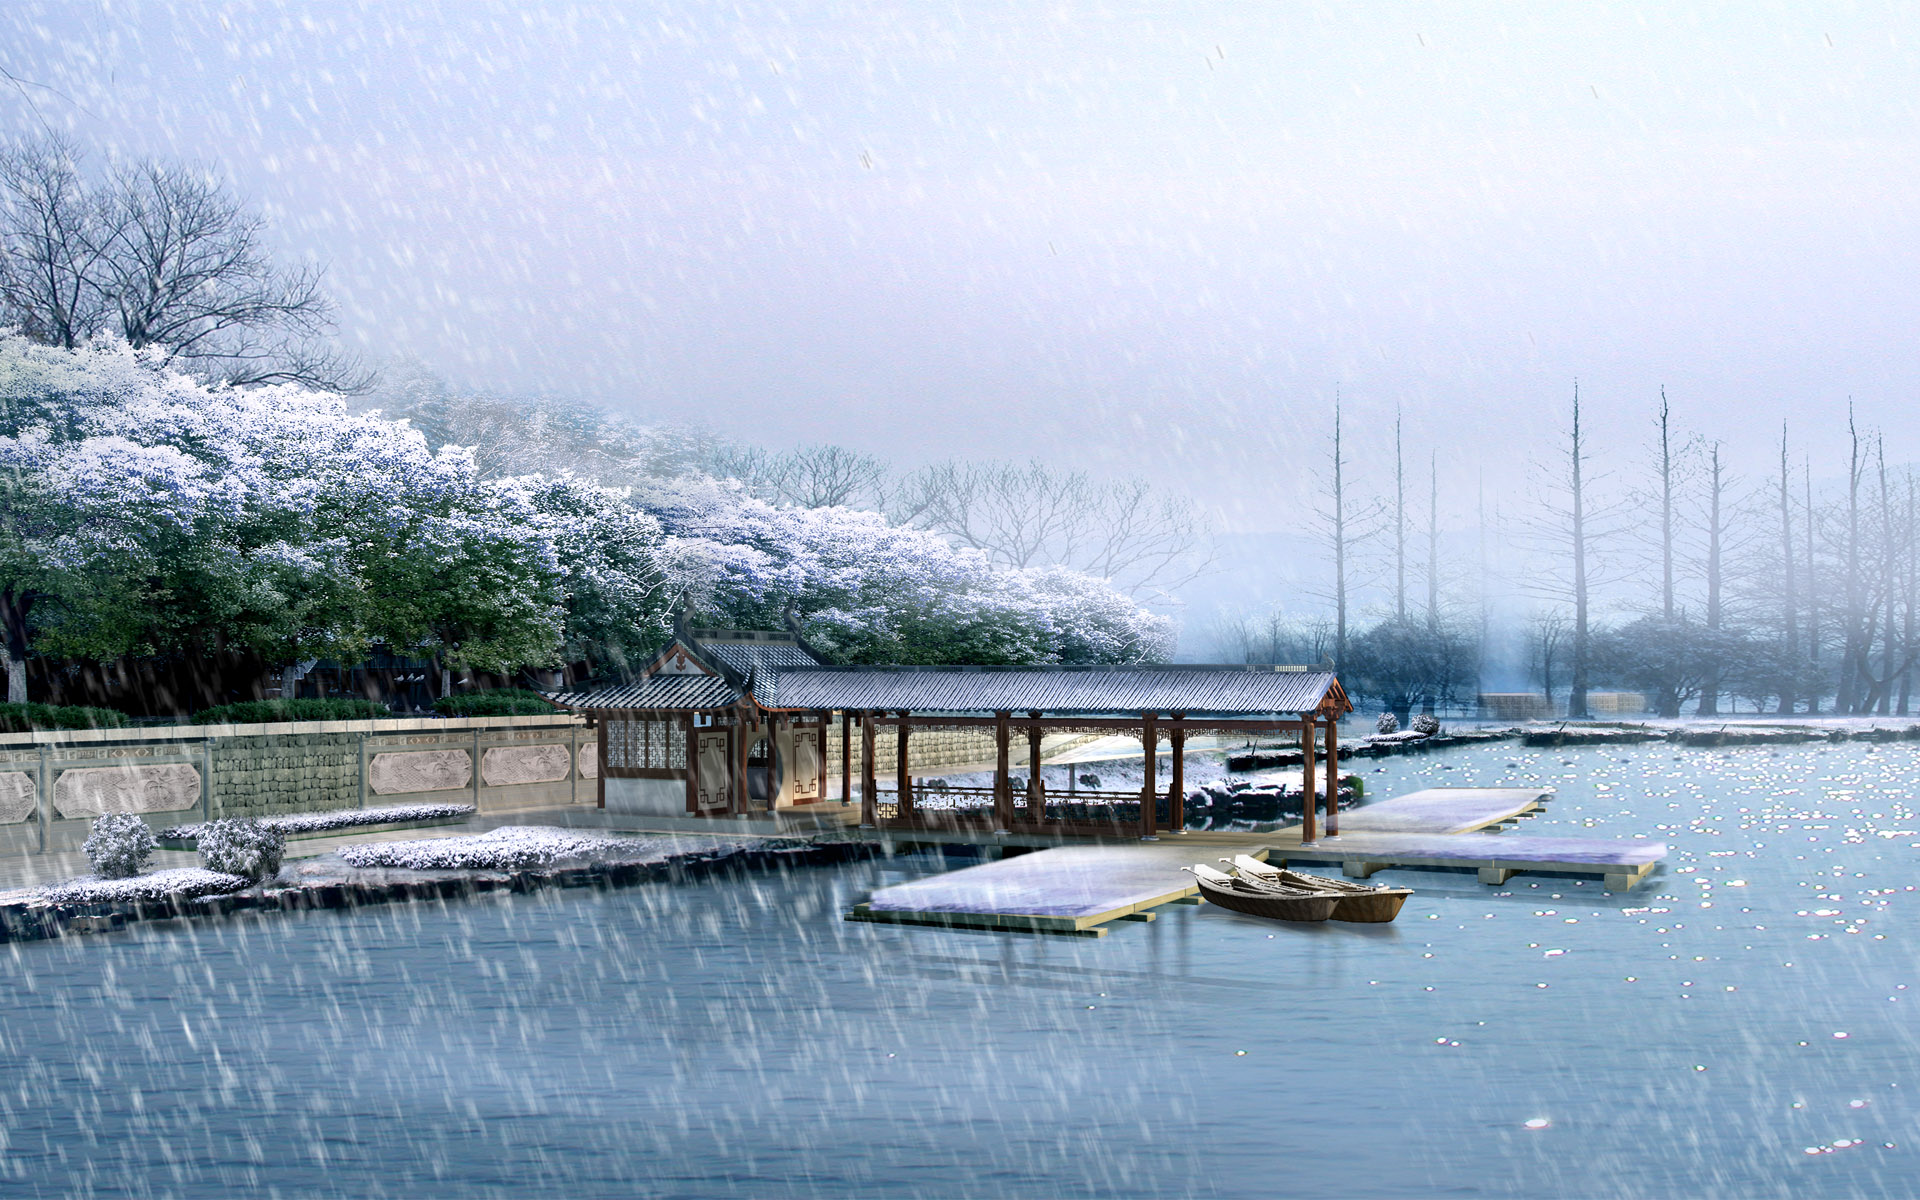 1920x1200 Snowing over lake desktop wallpapers and stock photos